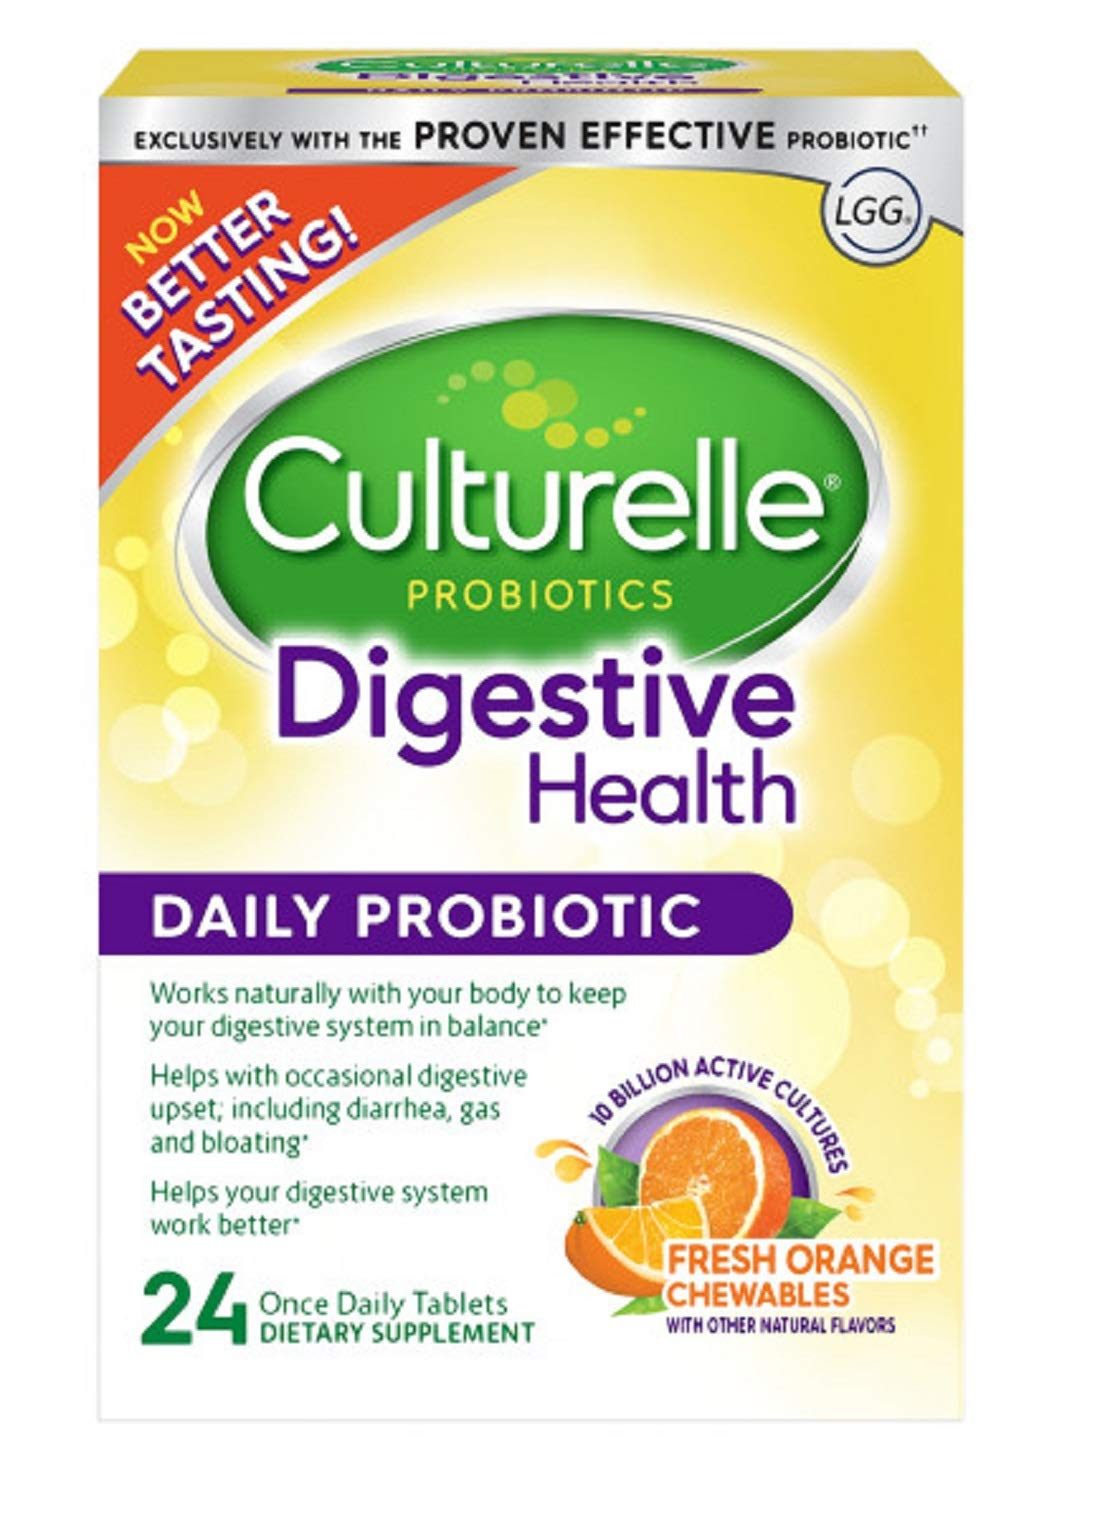 Culturelle Digestive Health Daily Formula Chewables, One Per Day Dietary Supplement, Contains 100% Naturally Sourced Lactobacillus GG -The Most Clinically Studied Probiotic†, 24 Count by Culturelle